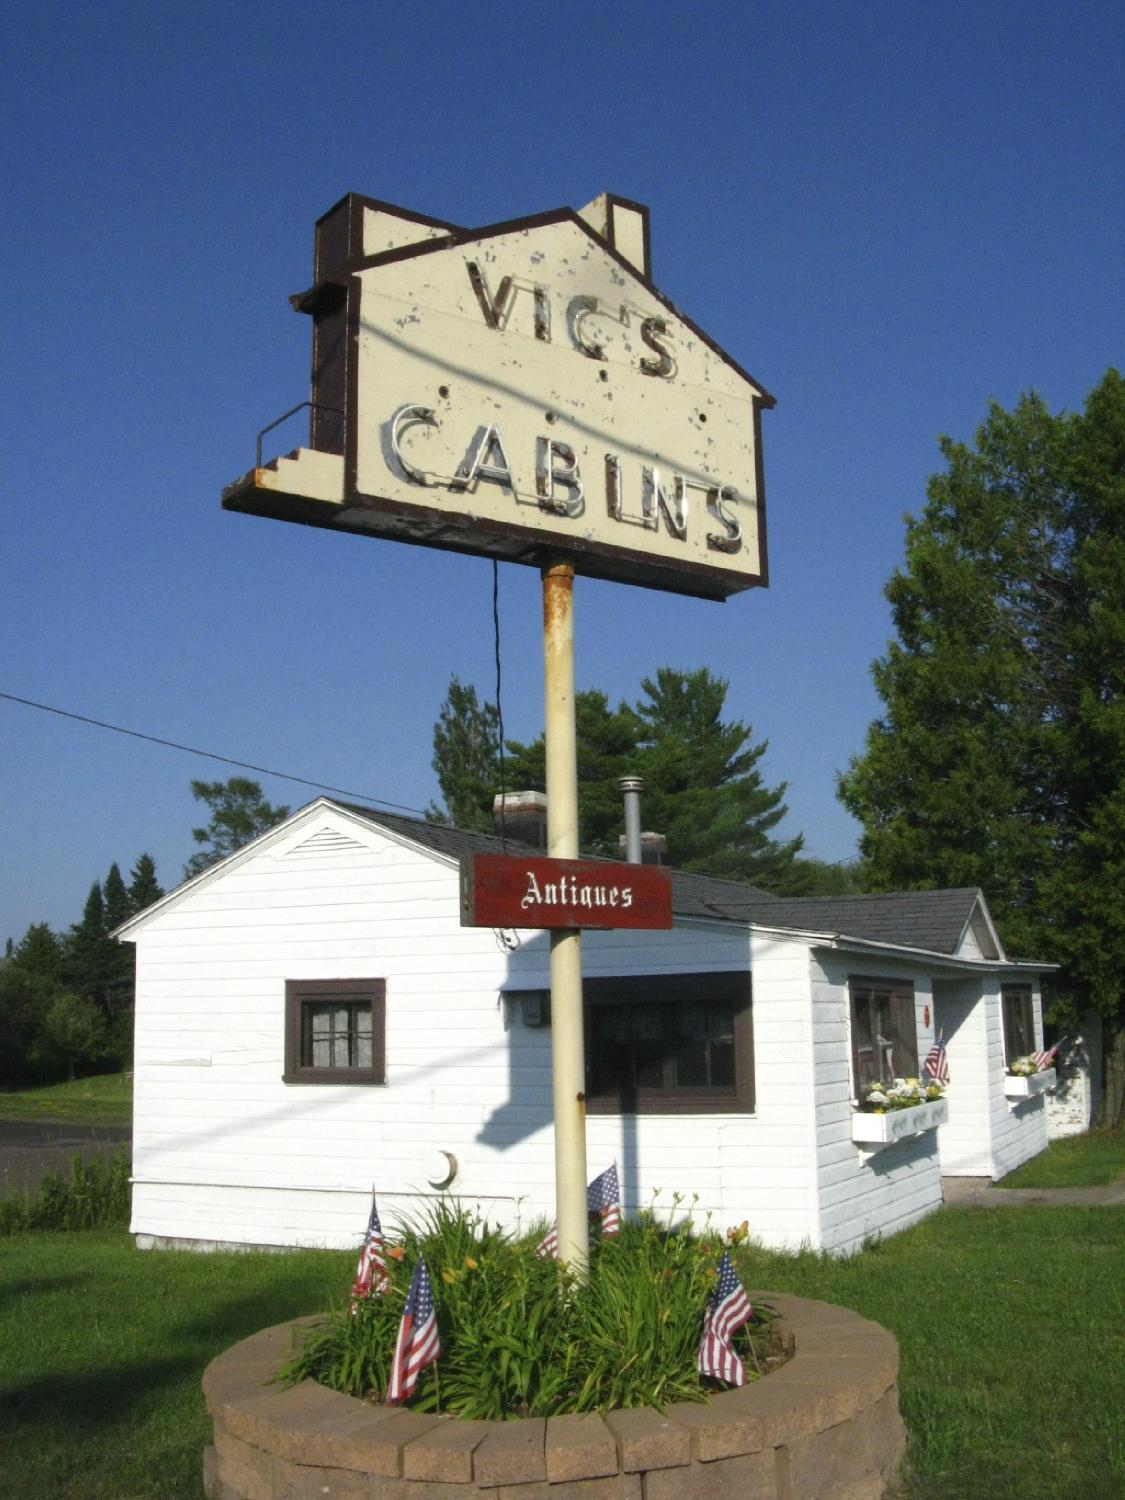 Vic's Cabins